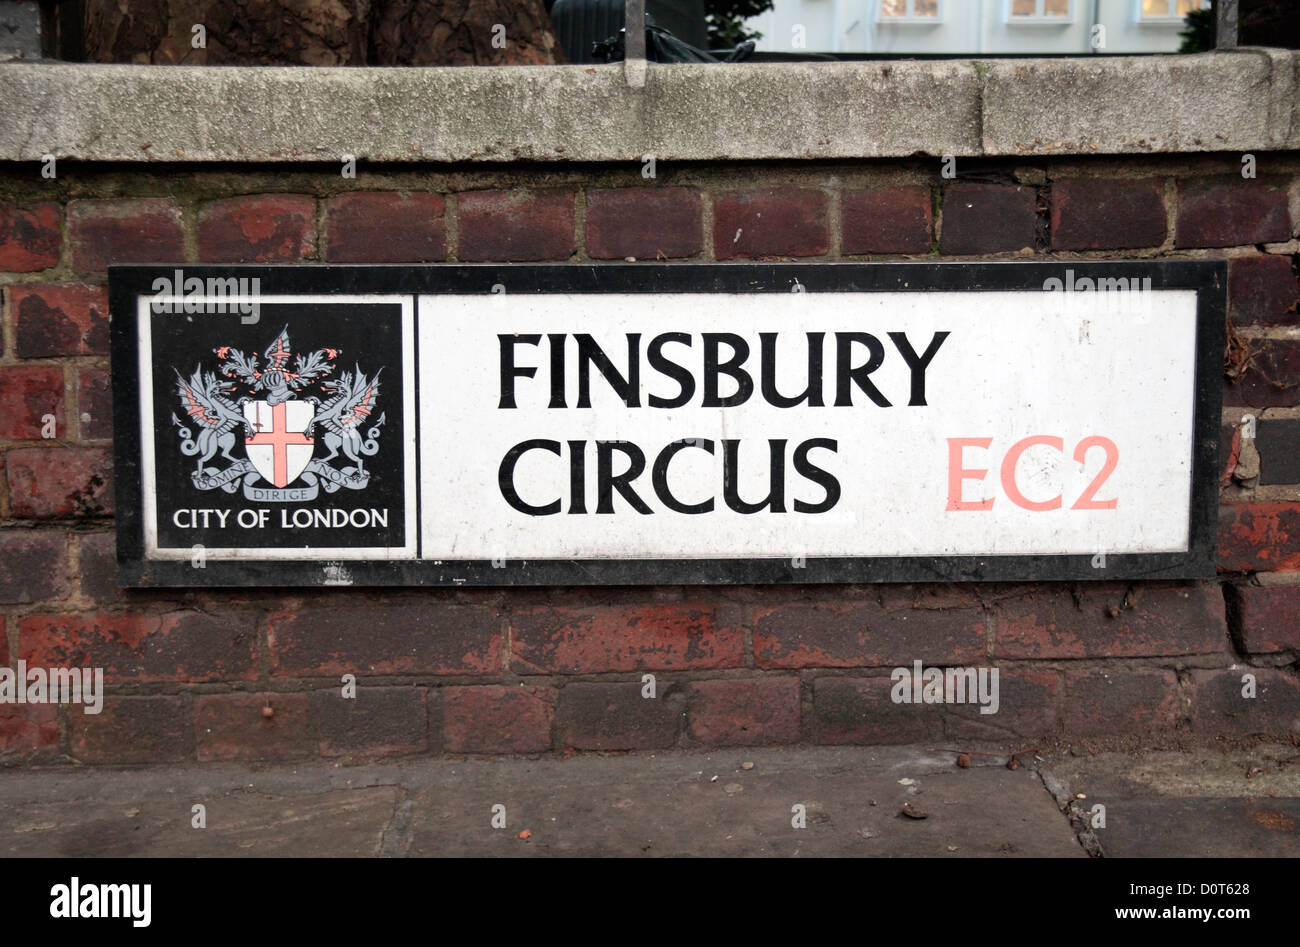 Street sign for Finsbury Circus, London EC2. - Stock Image